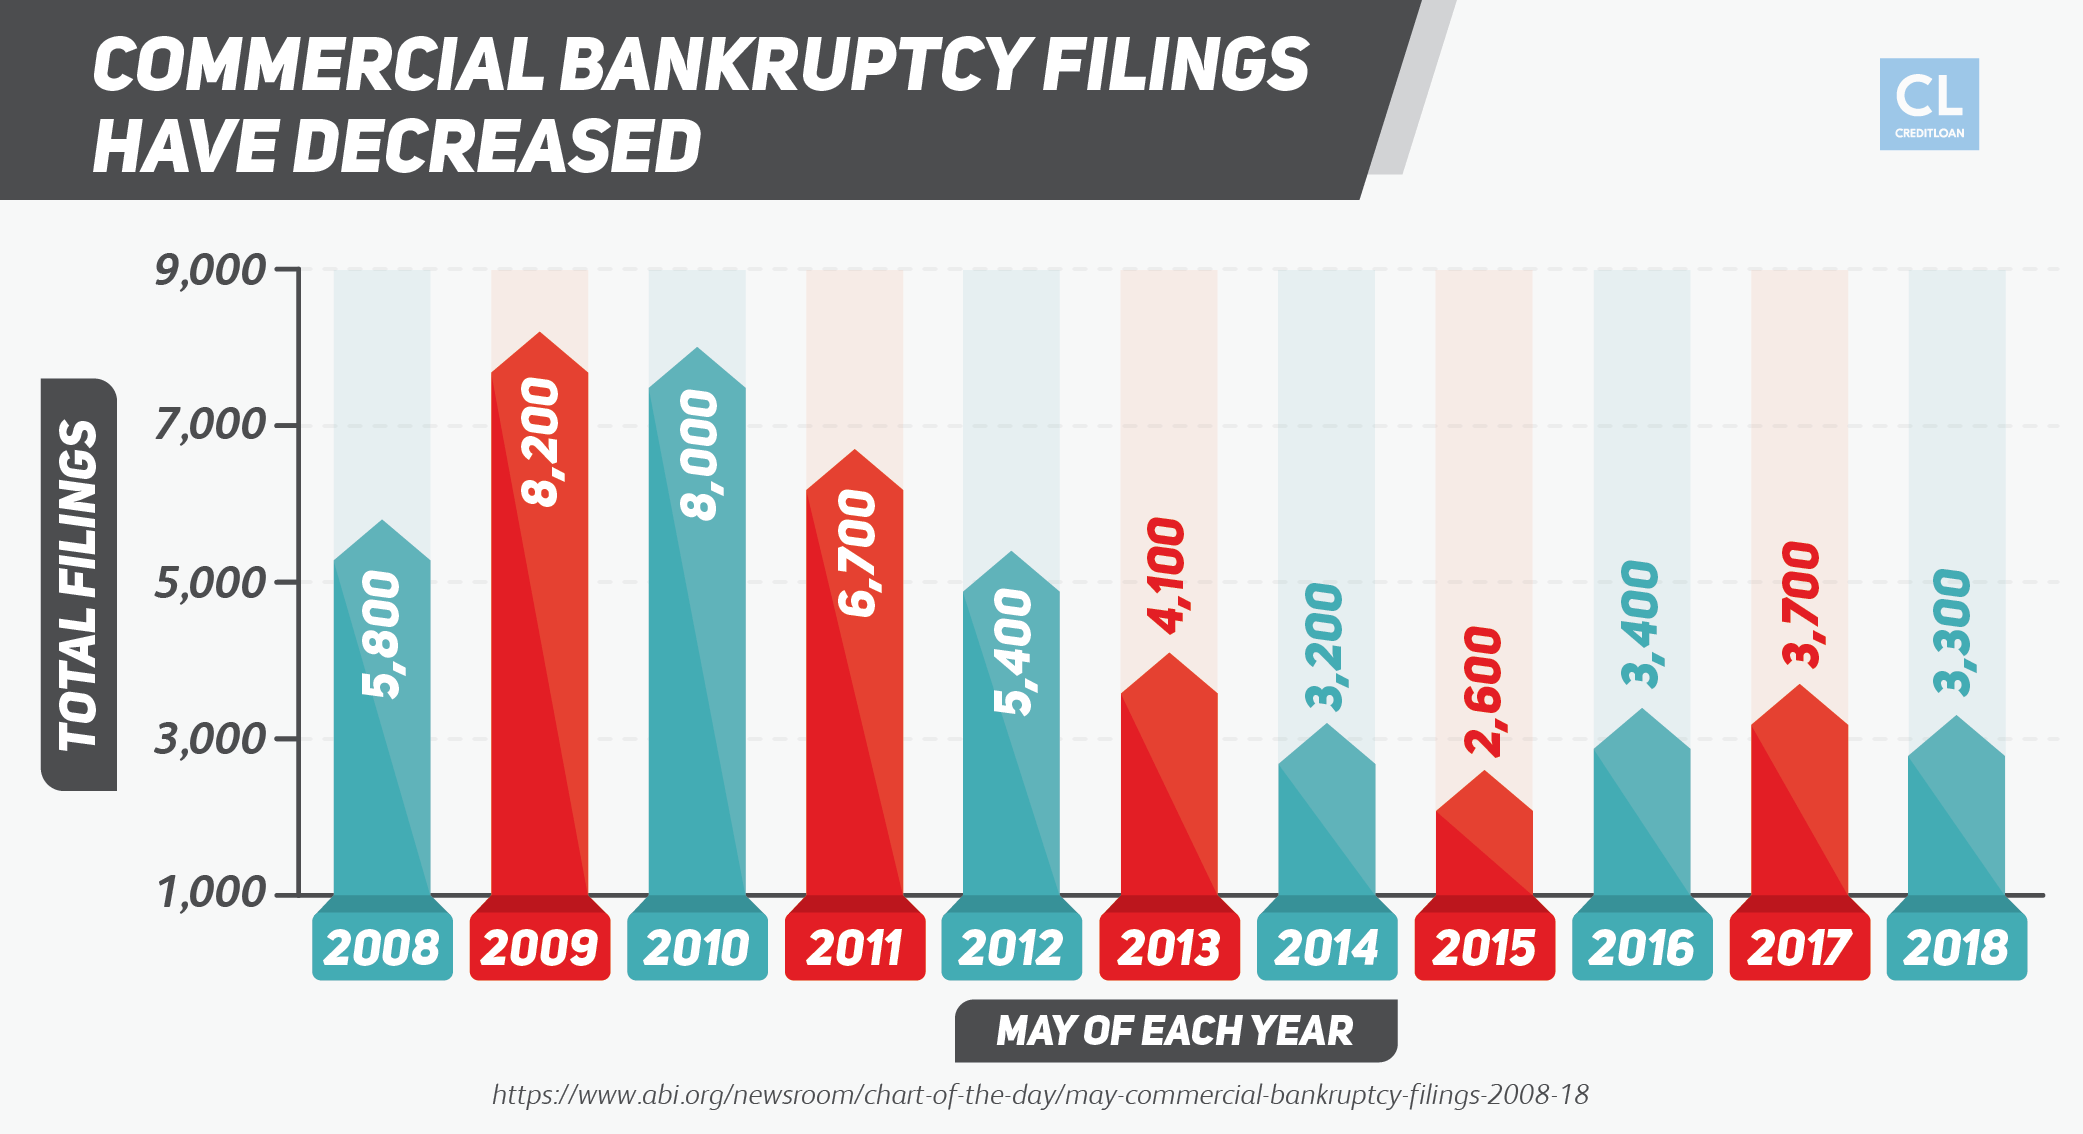 Commercial Bankruptcy Filings Have Decreased from 2008-2018